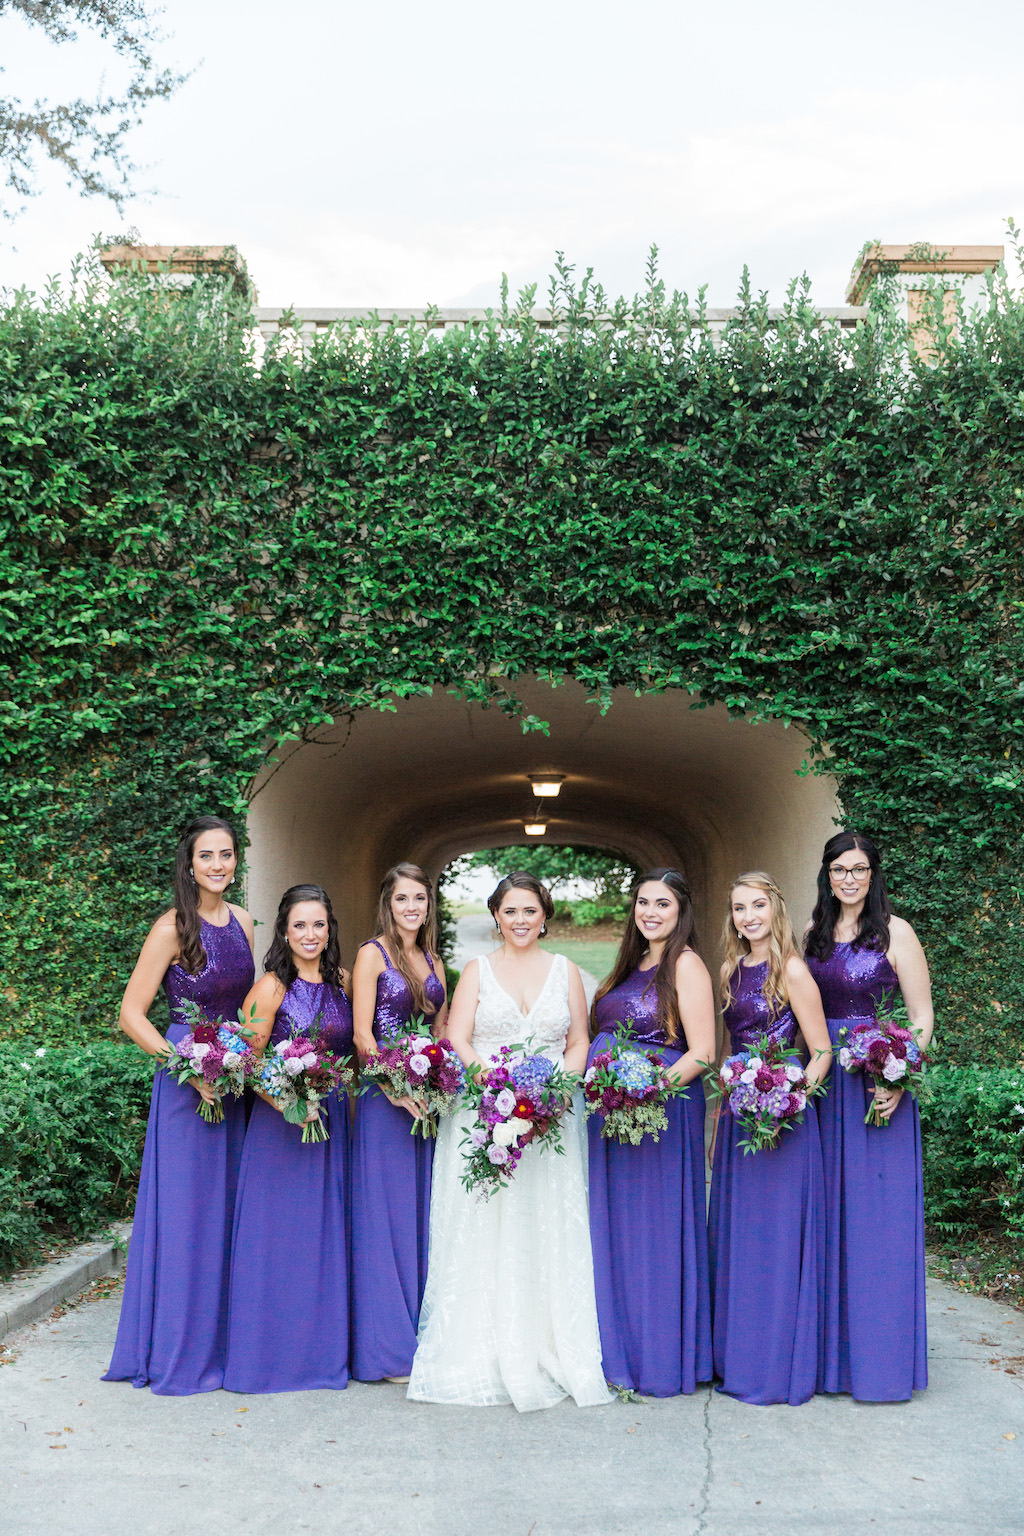 Outdoor Garden Wedding Party Portrait, Bride in Calla Blanch V Neck Wedding Dress, Bridesmaids in Jasmine B2 Sequin Violet Dresses, with White, Magenta, Lavender Purple Bouquets with Greenery   Tampa Bay Outdoor Wedding Venue Lakewood Ranch Golf & Country Club